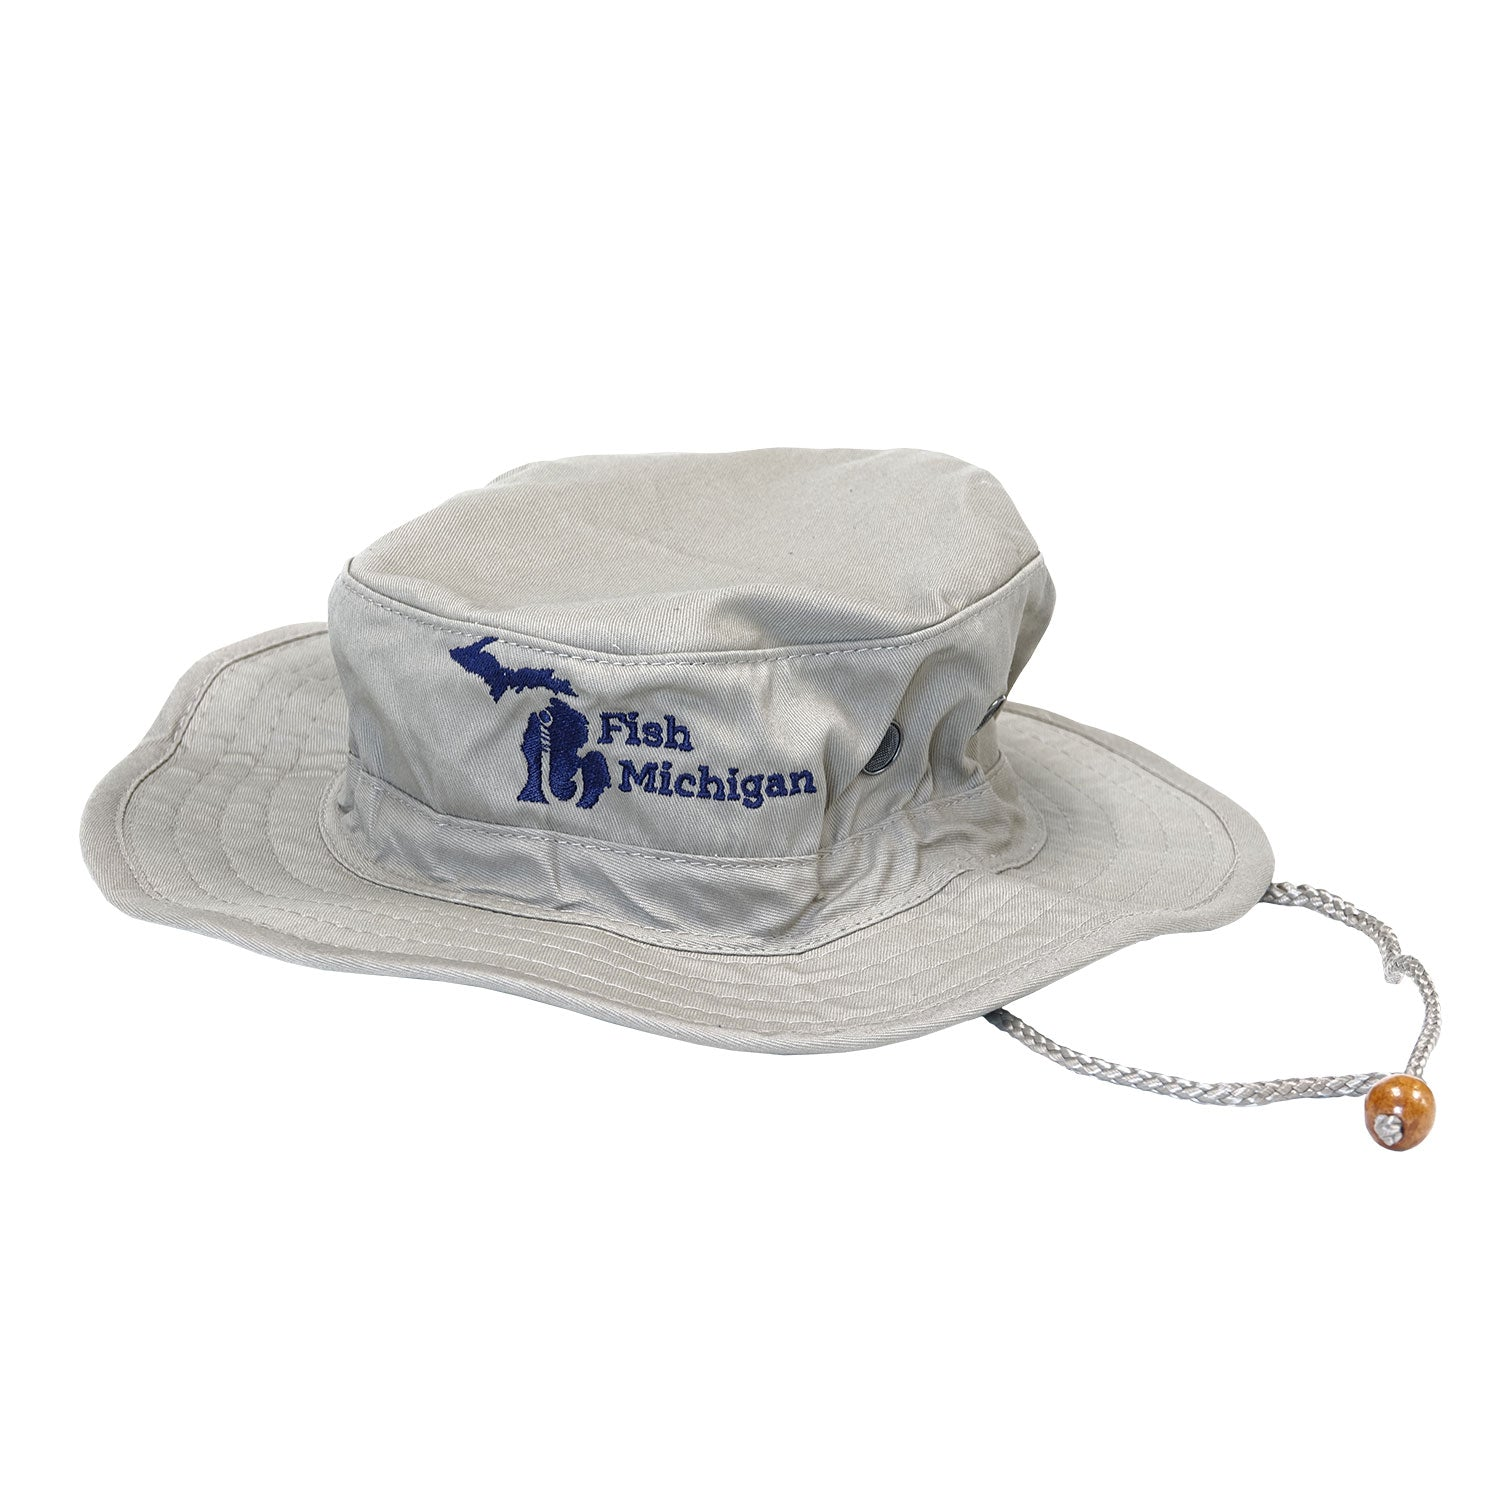 Fish Michigan Bucket Hat